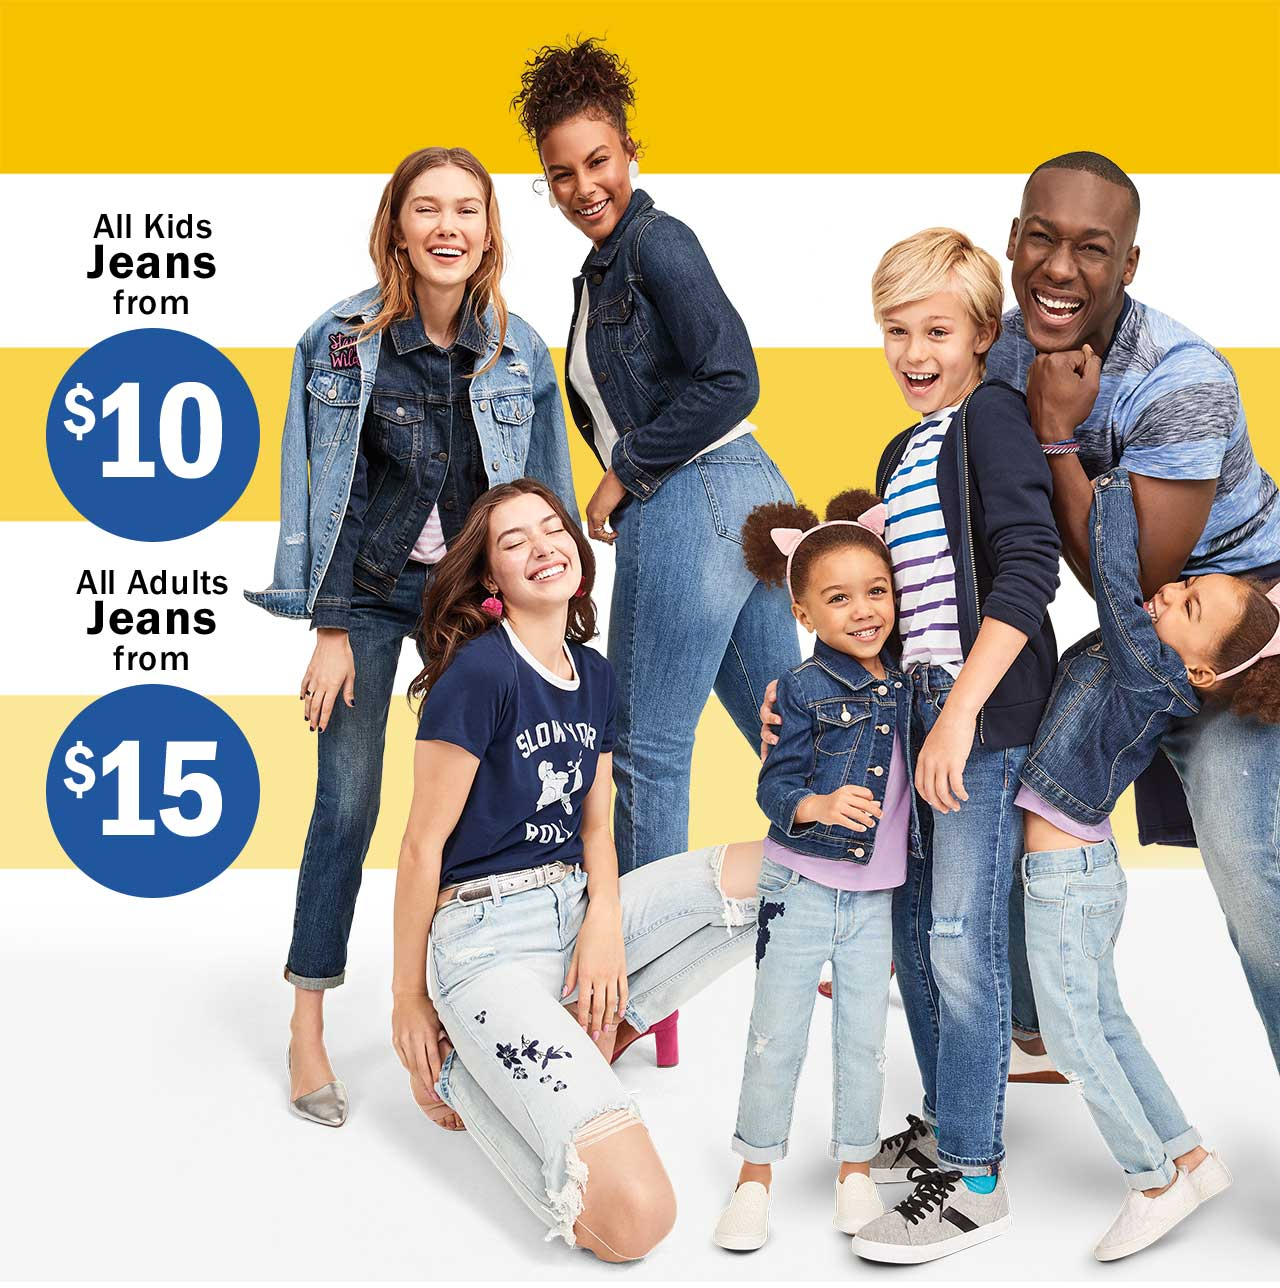 All Kids Jeans from $10 | All Adults Jeans from $15